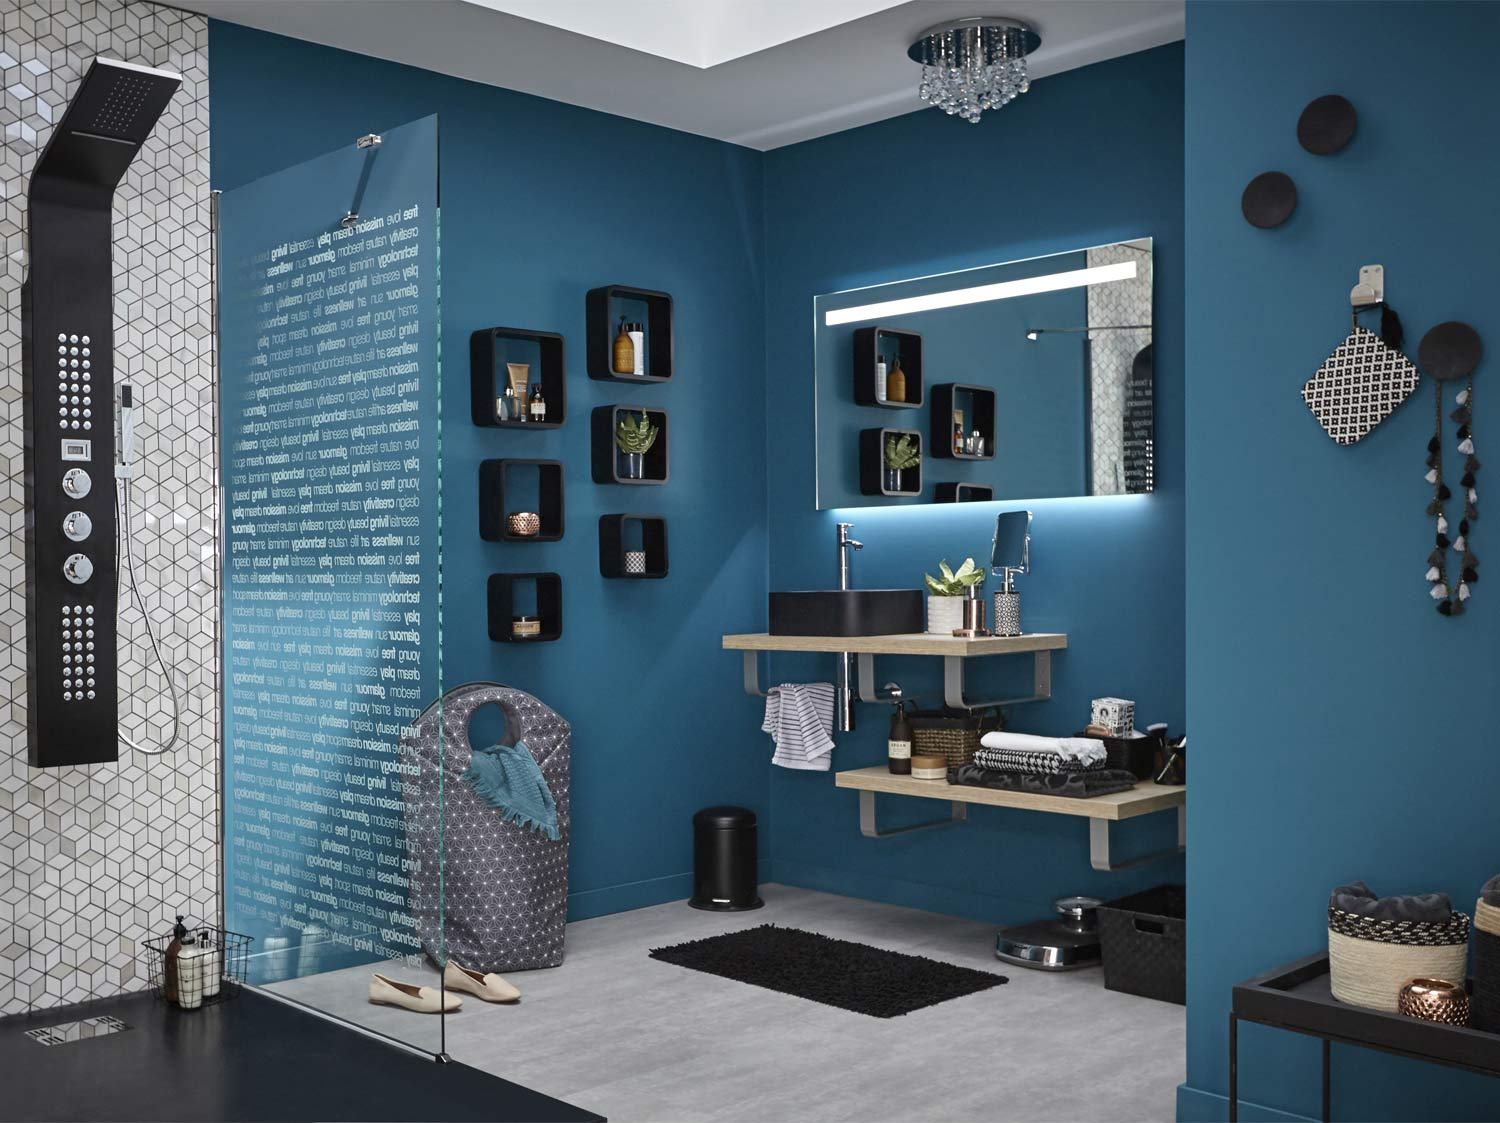 salles de bains leroy merlin interesting prix carrelage salle de bain leroy merlin with salles. Black Bedroom Furniture Sets. Home Design Ideas